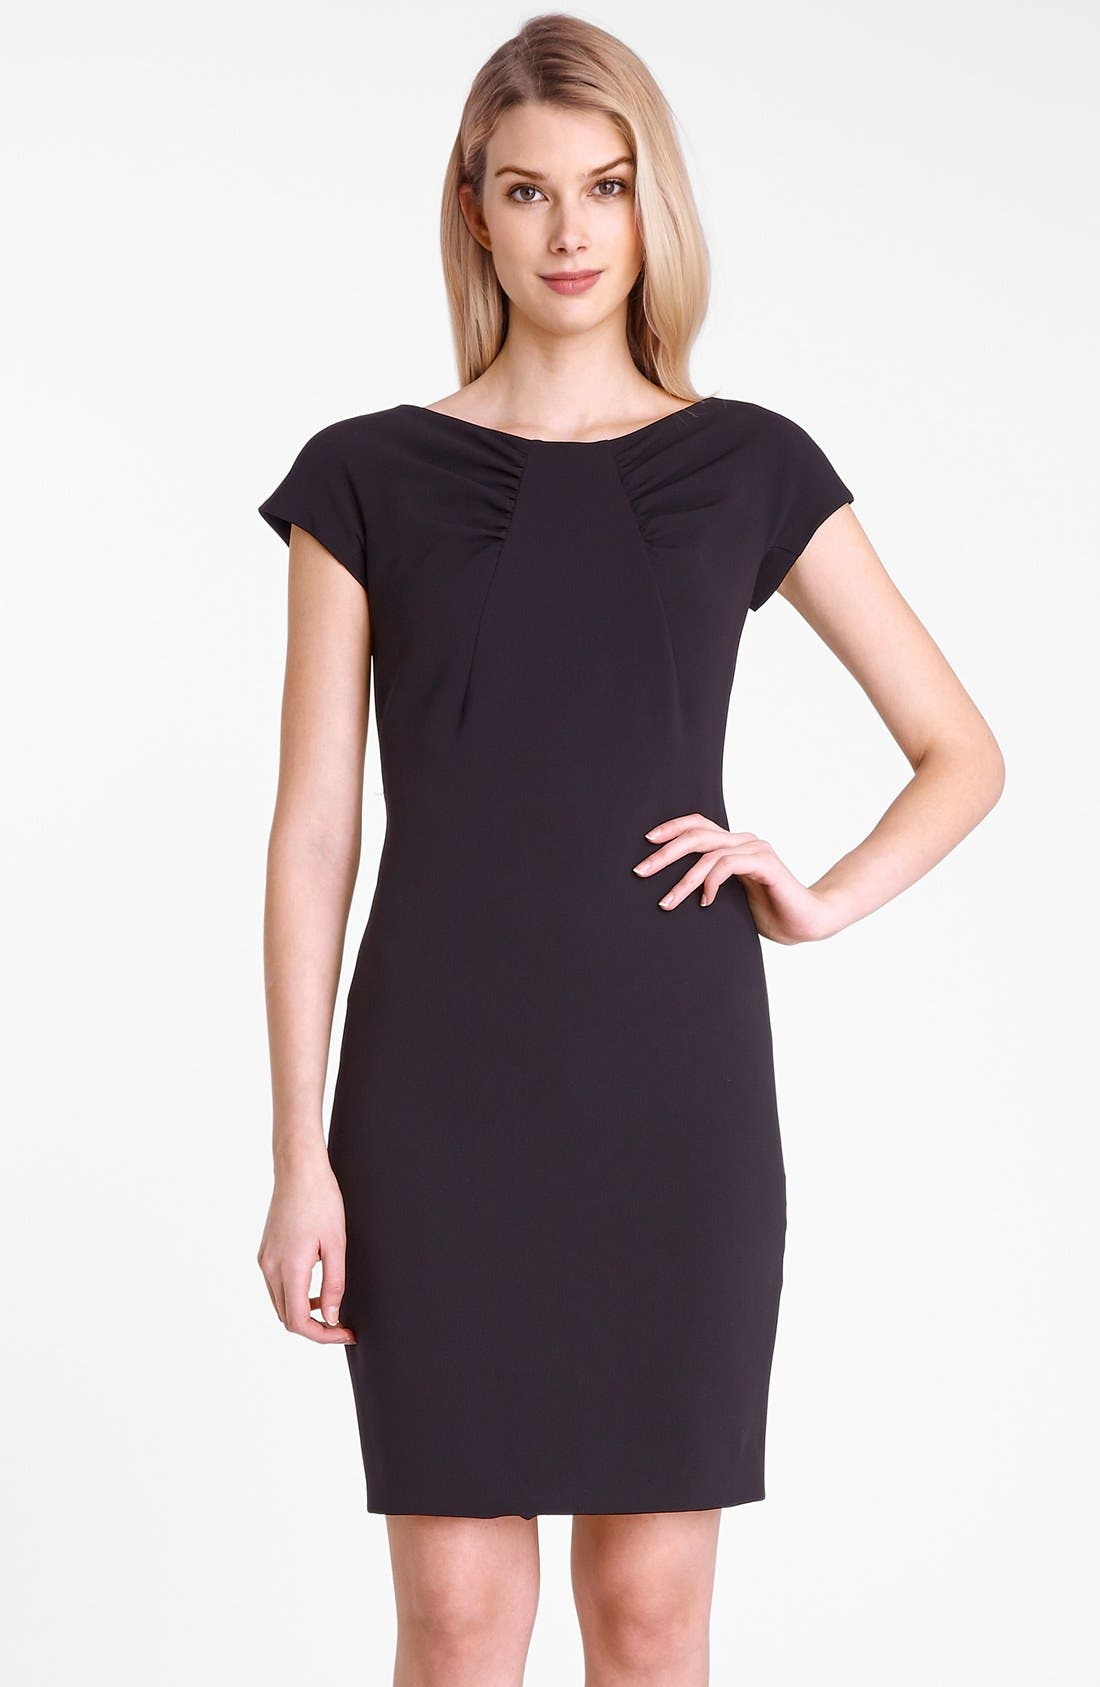 Alternate Image 1 Selected - Tahari Gathered Neck Crepe Sheath Dress (Petite)